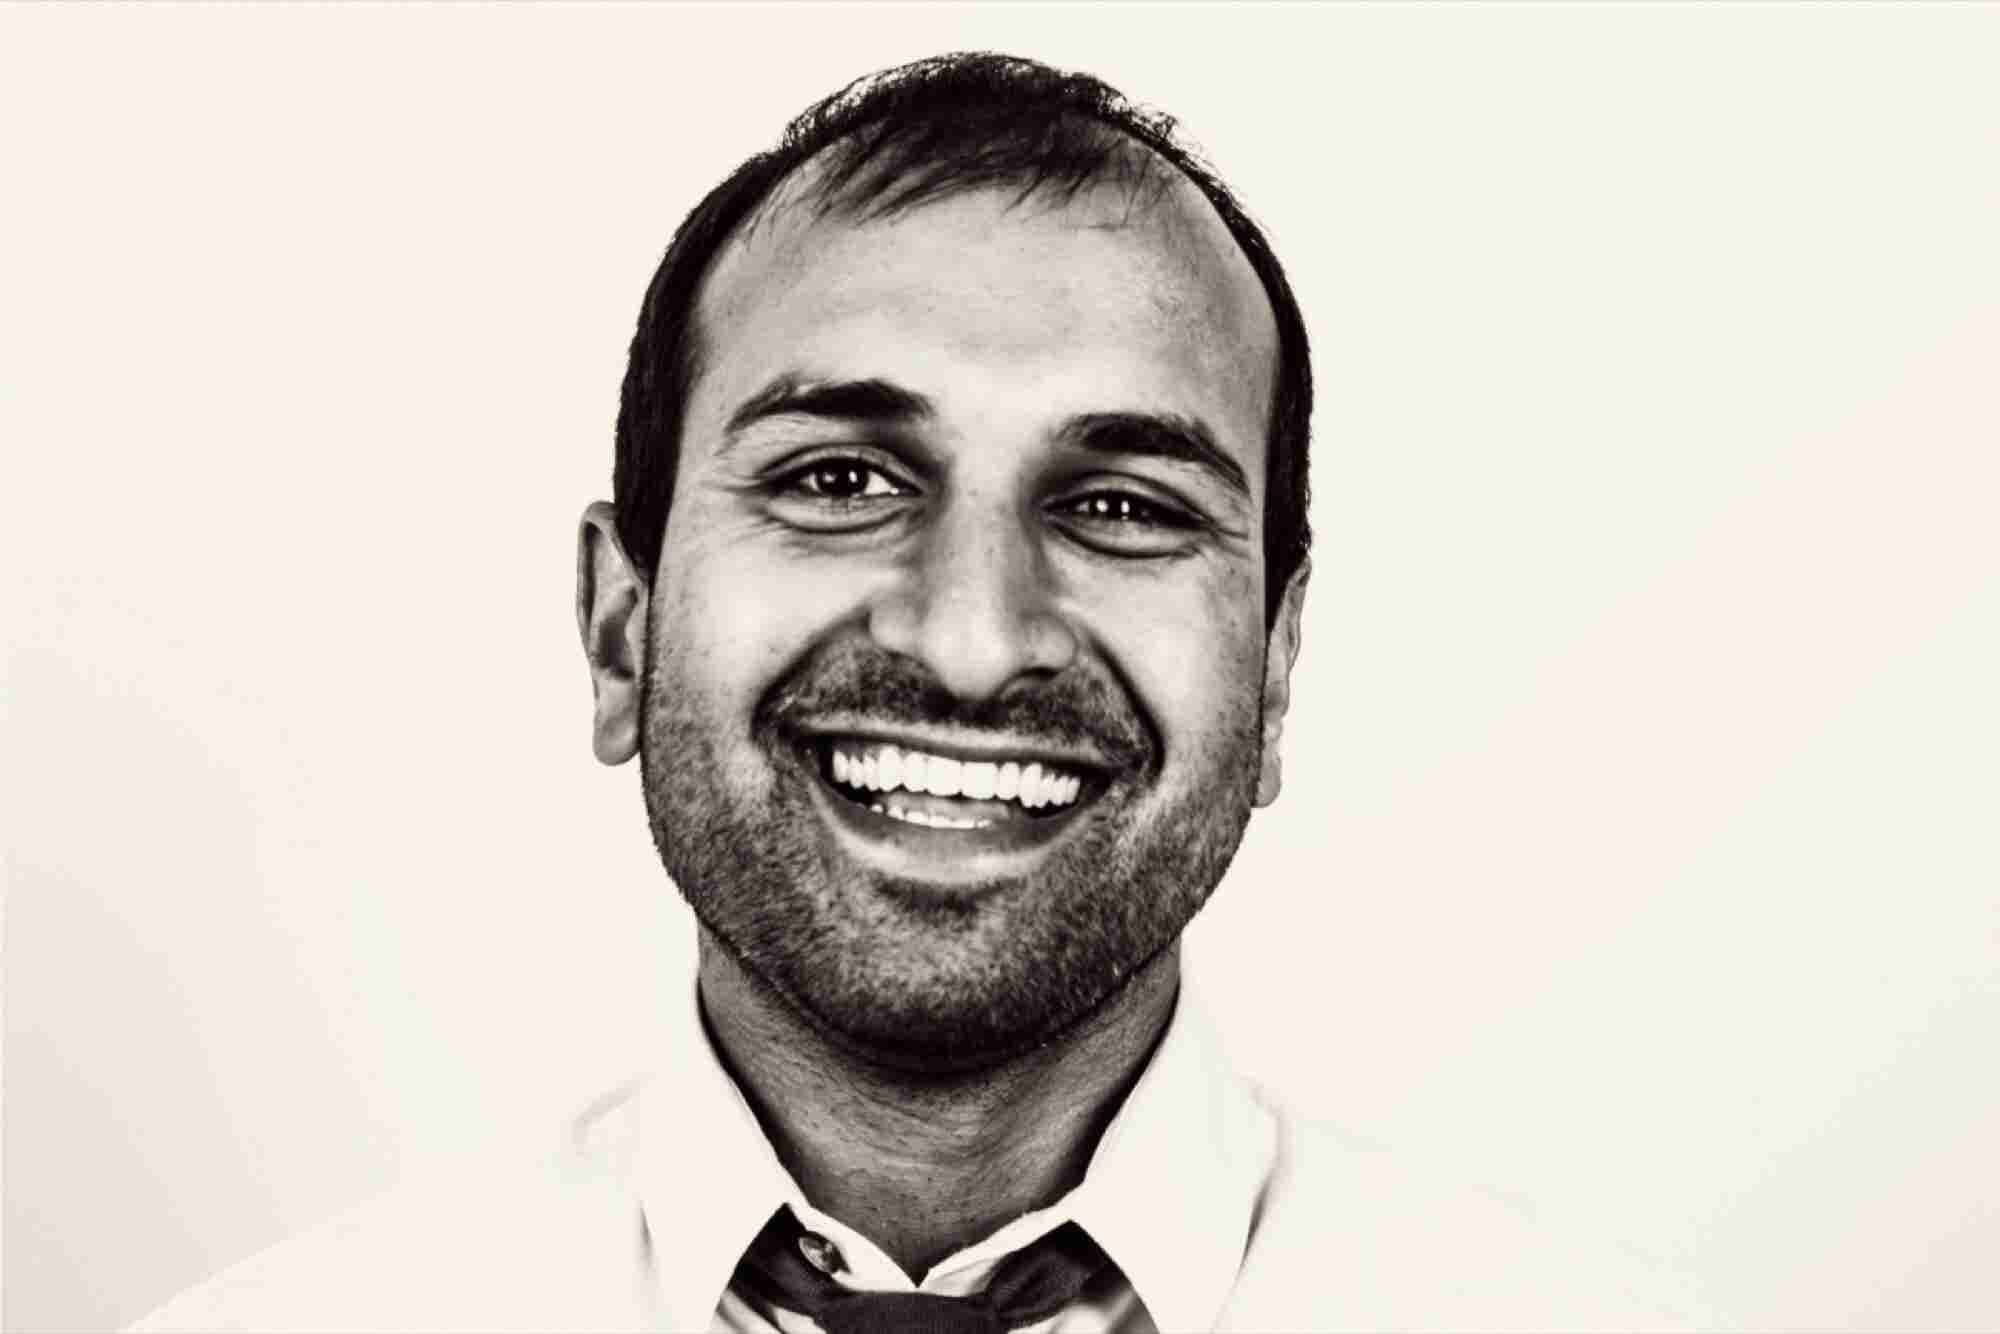 Have a Burning Business Question? Ask Our Marketing Pro Sujan Patel.